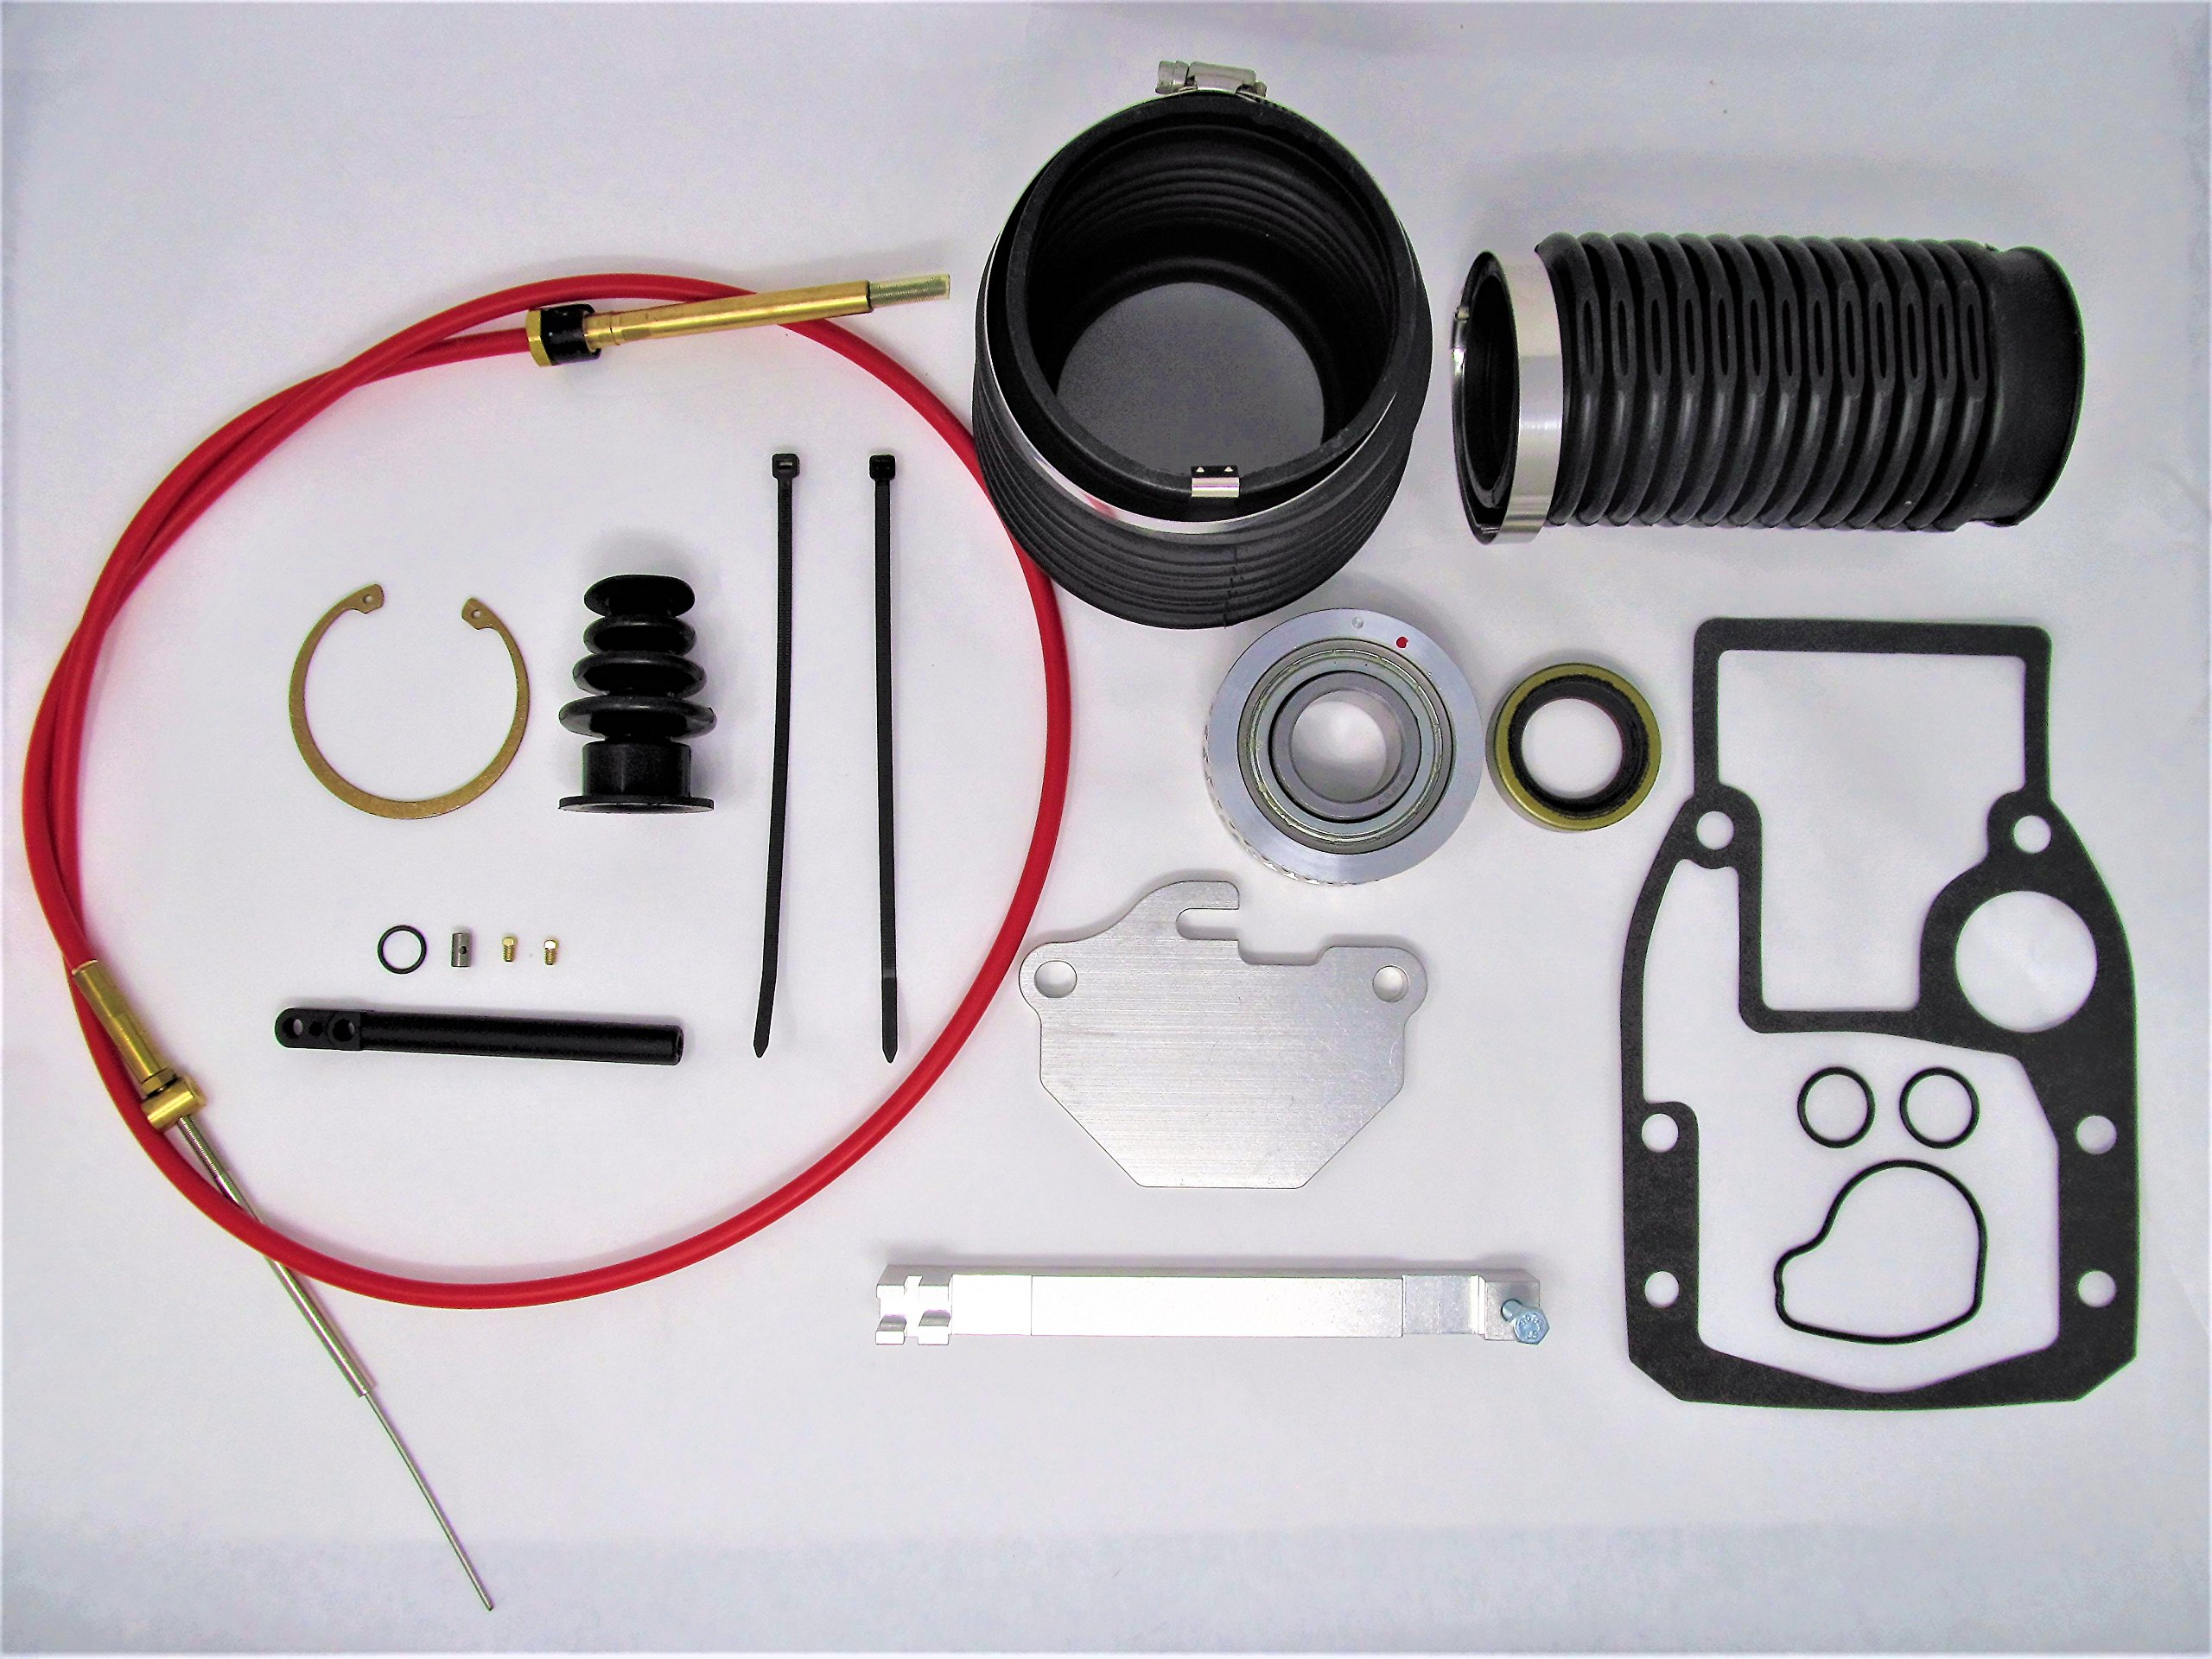 Marine Parts House OMC Cobra TRANSOM/SHIFTCABLE KIT W/Seal and SNAP Ring 3852548 18-2771 3854127 by Marine Parts House